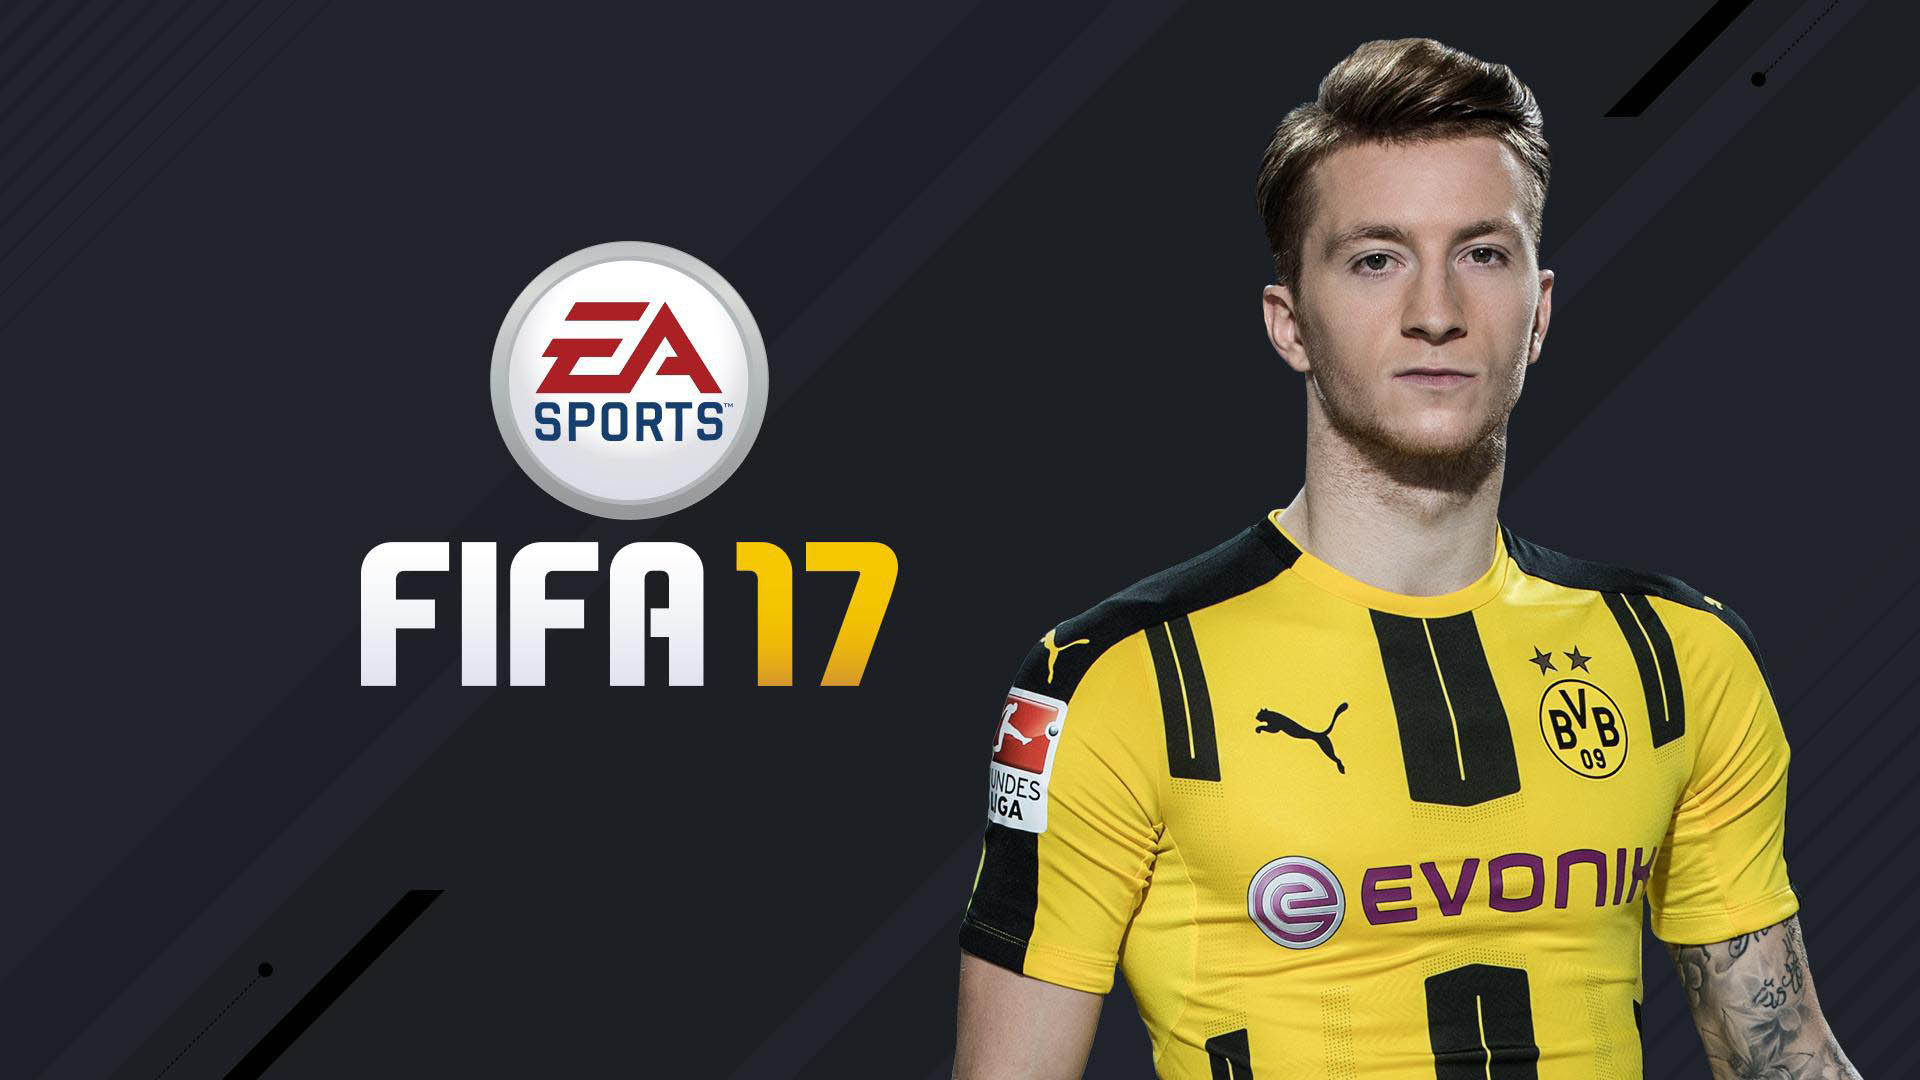 Fifa 17 Marco Reus Wallpaper 6440